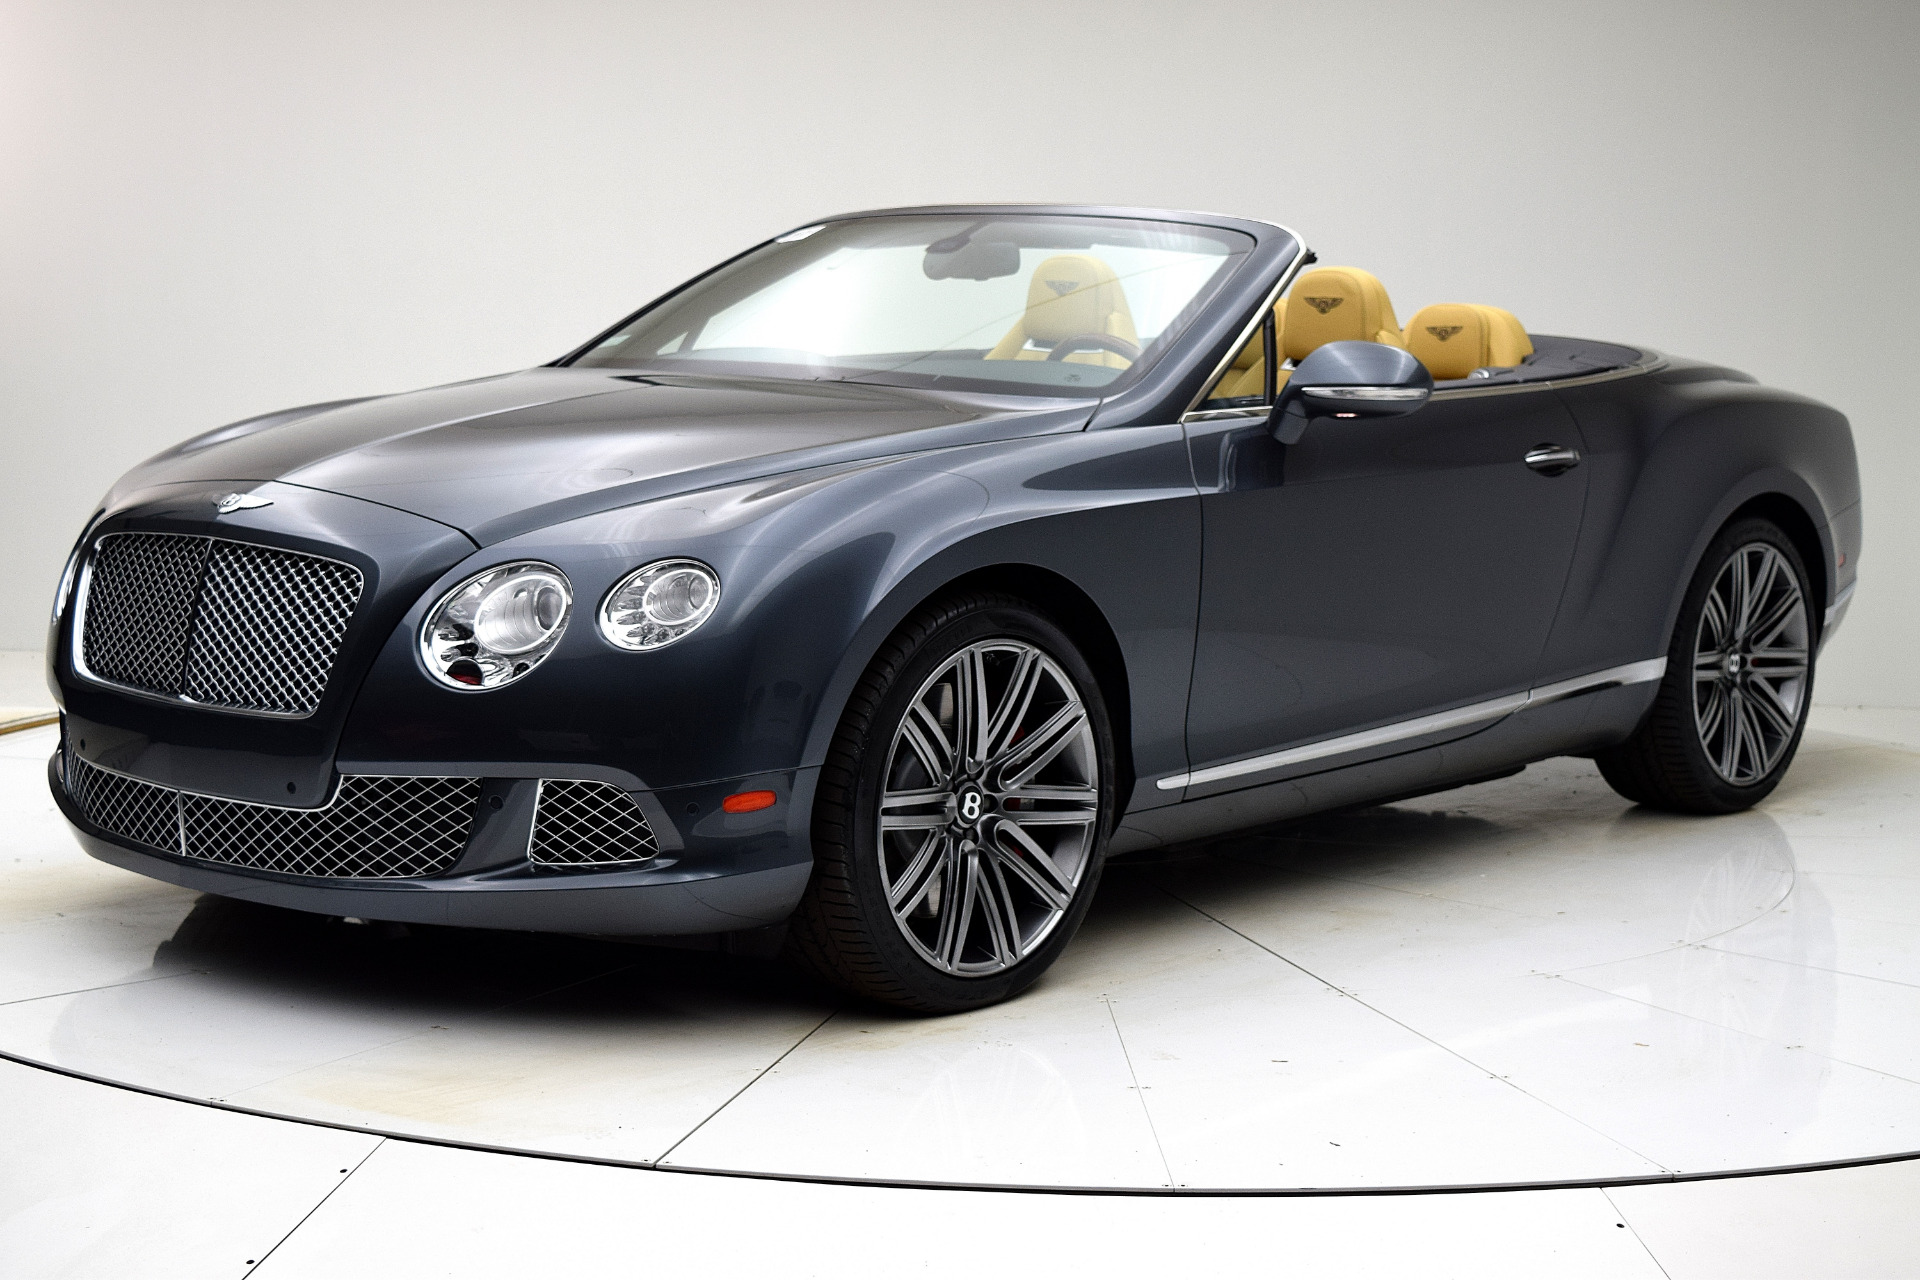 Used 2013 Bentley Continental GT W12 Convertible for sale $99,880 at F.C. Kerbeck Aston Martin in Palmyra NJ 08065 2